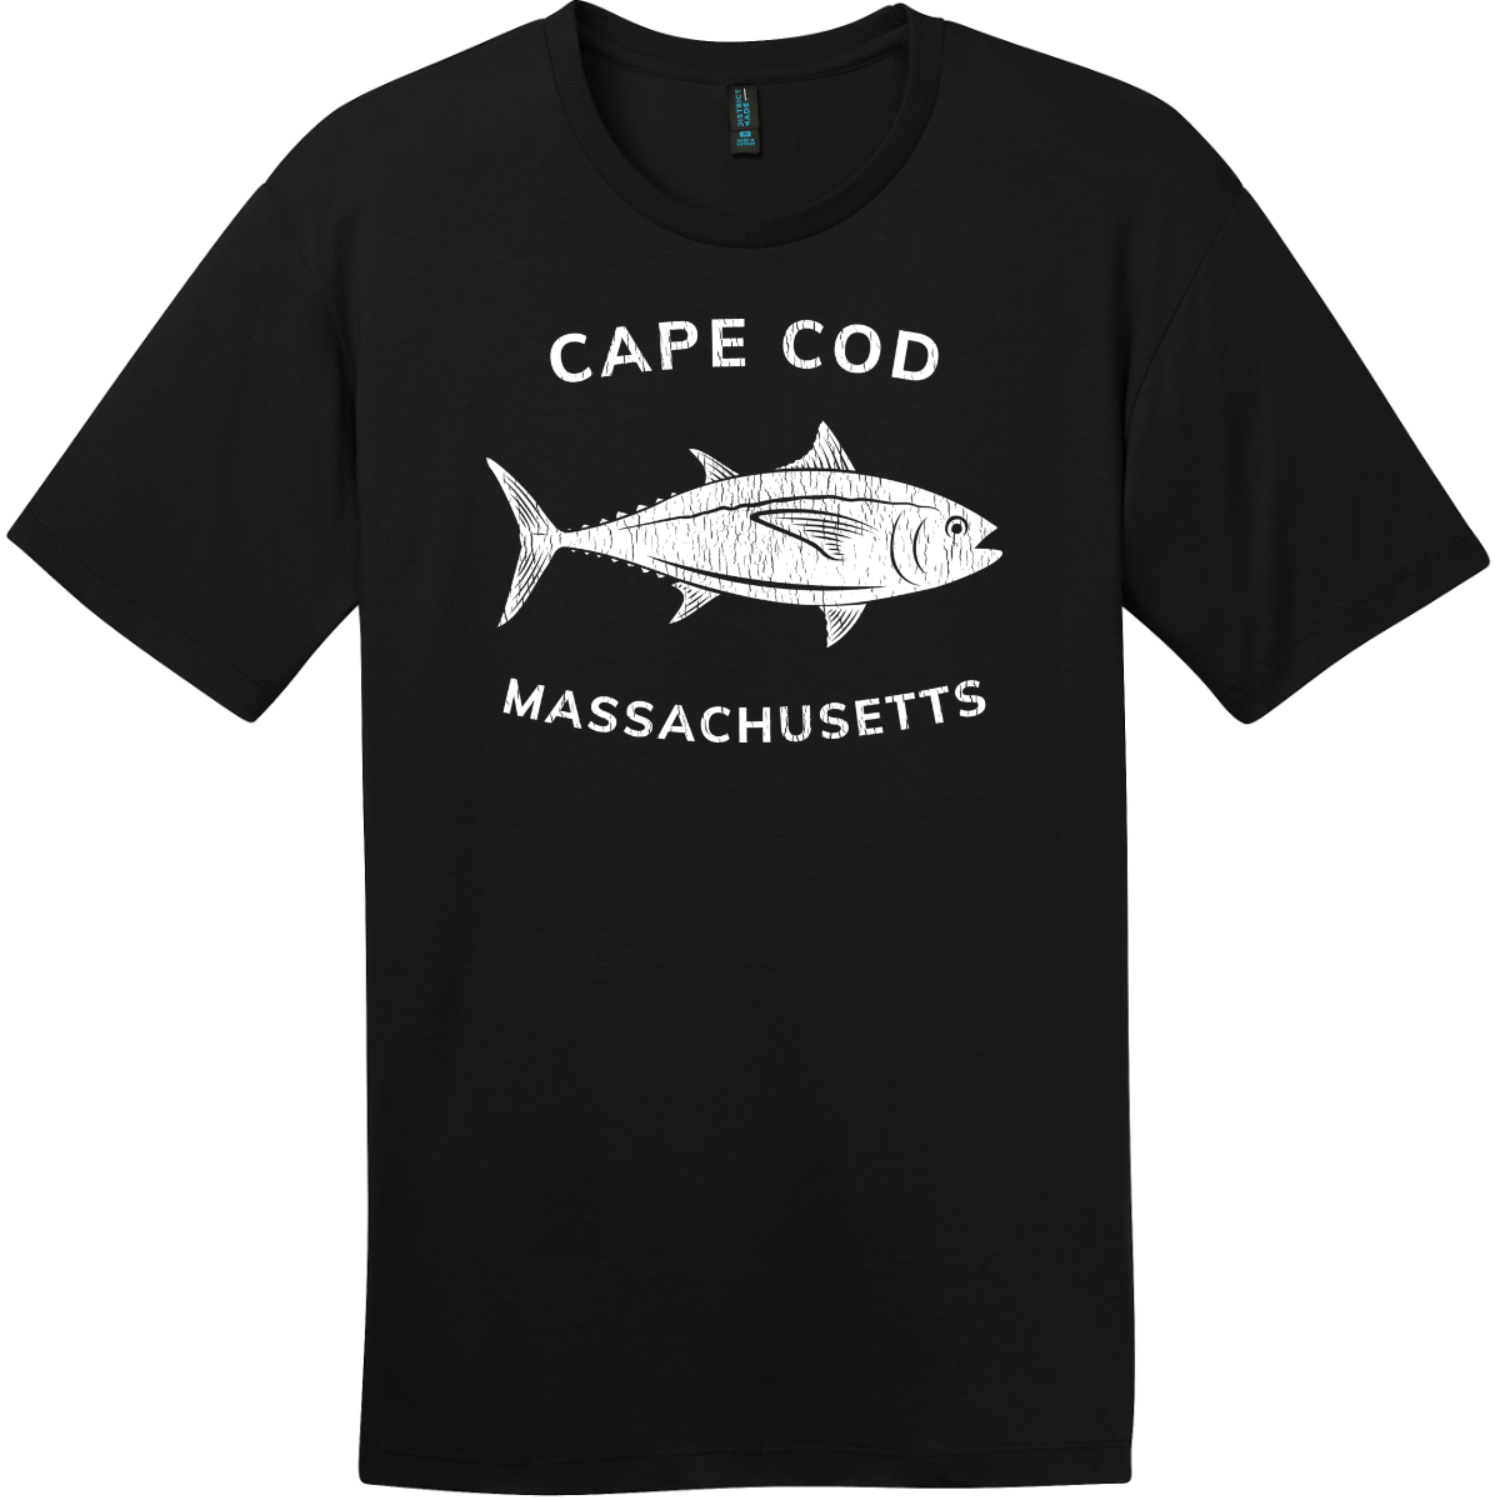 Cape Cod Massachusetts Tuna T-Shirt Jet Black District Perfect Weight Tee DT104